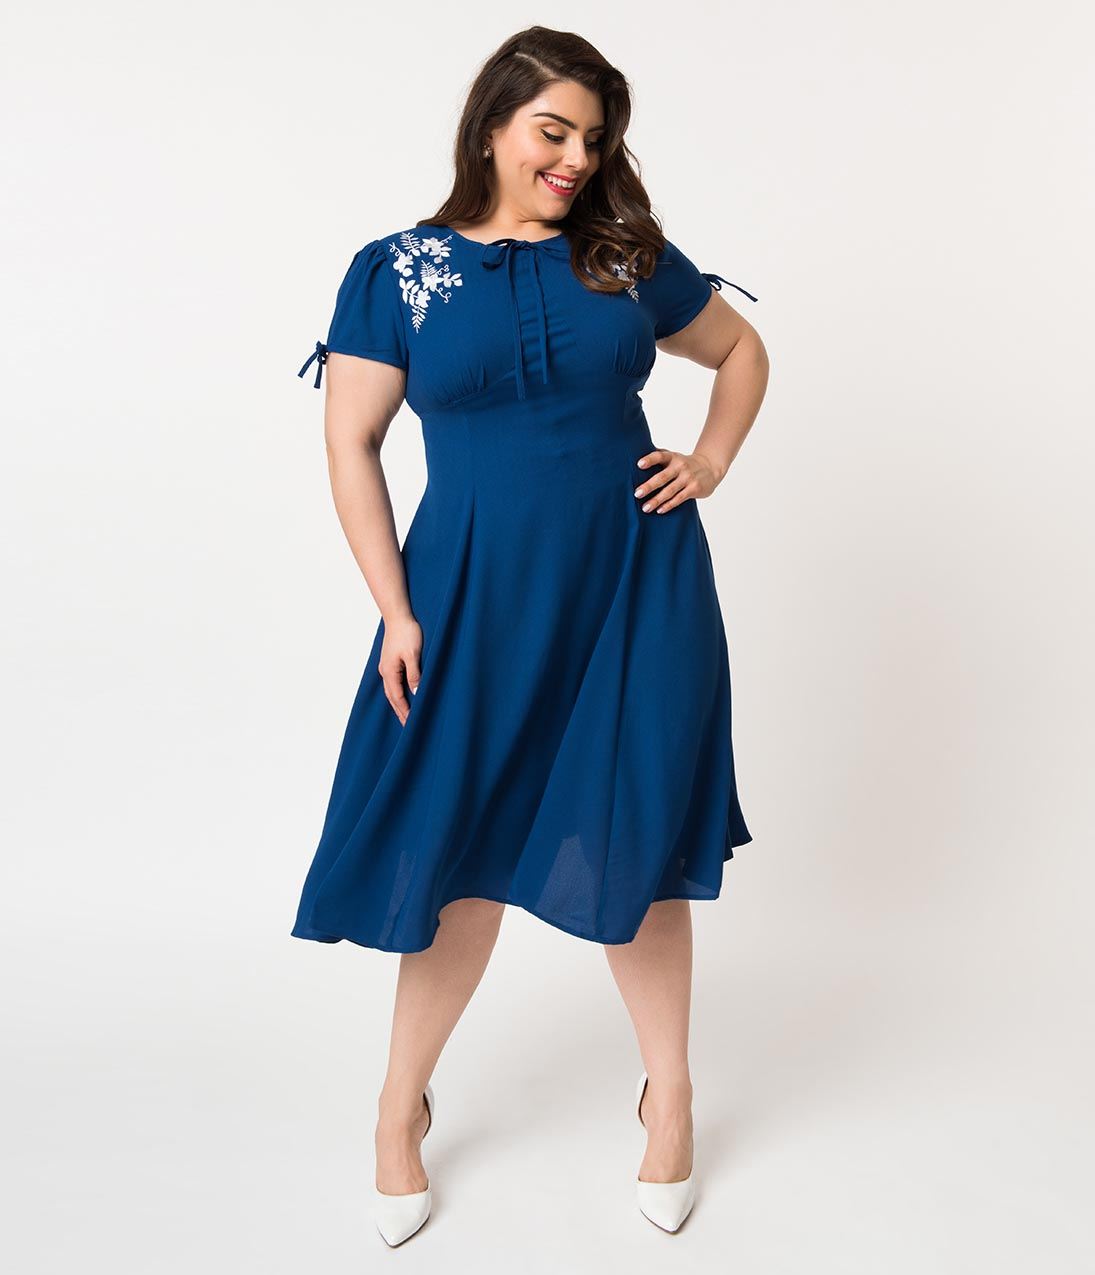 1940s Fashion Advice for Short Women Plus Size 1940S Style Royal Blue Crepe  White Embroidered Floral Ava Swing Dress $78.00 AT vintagedancer.com